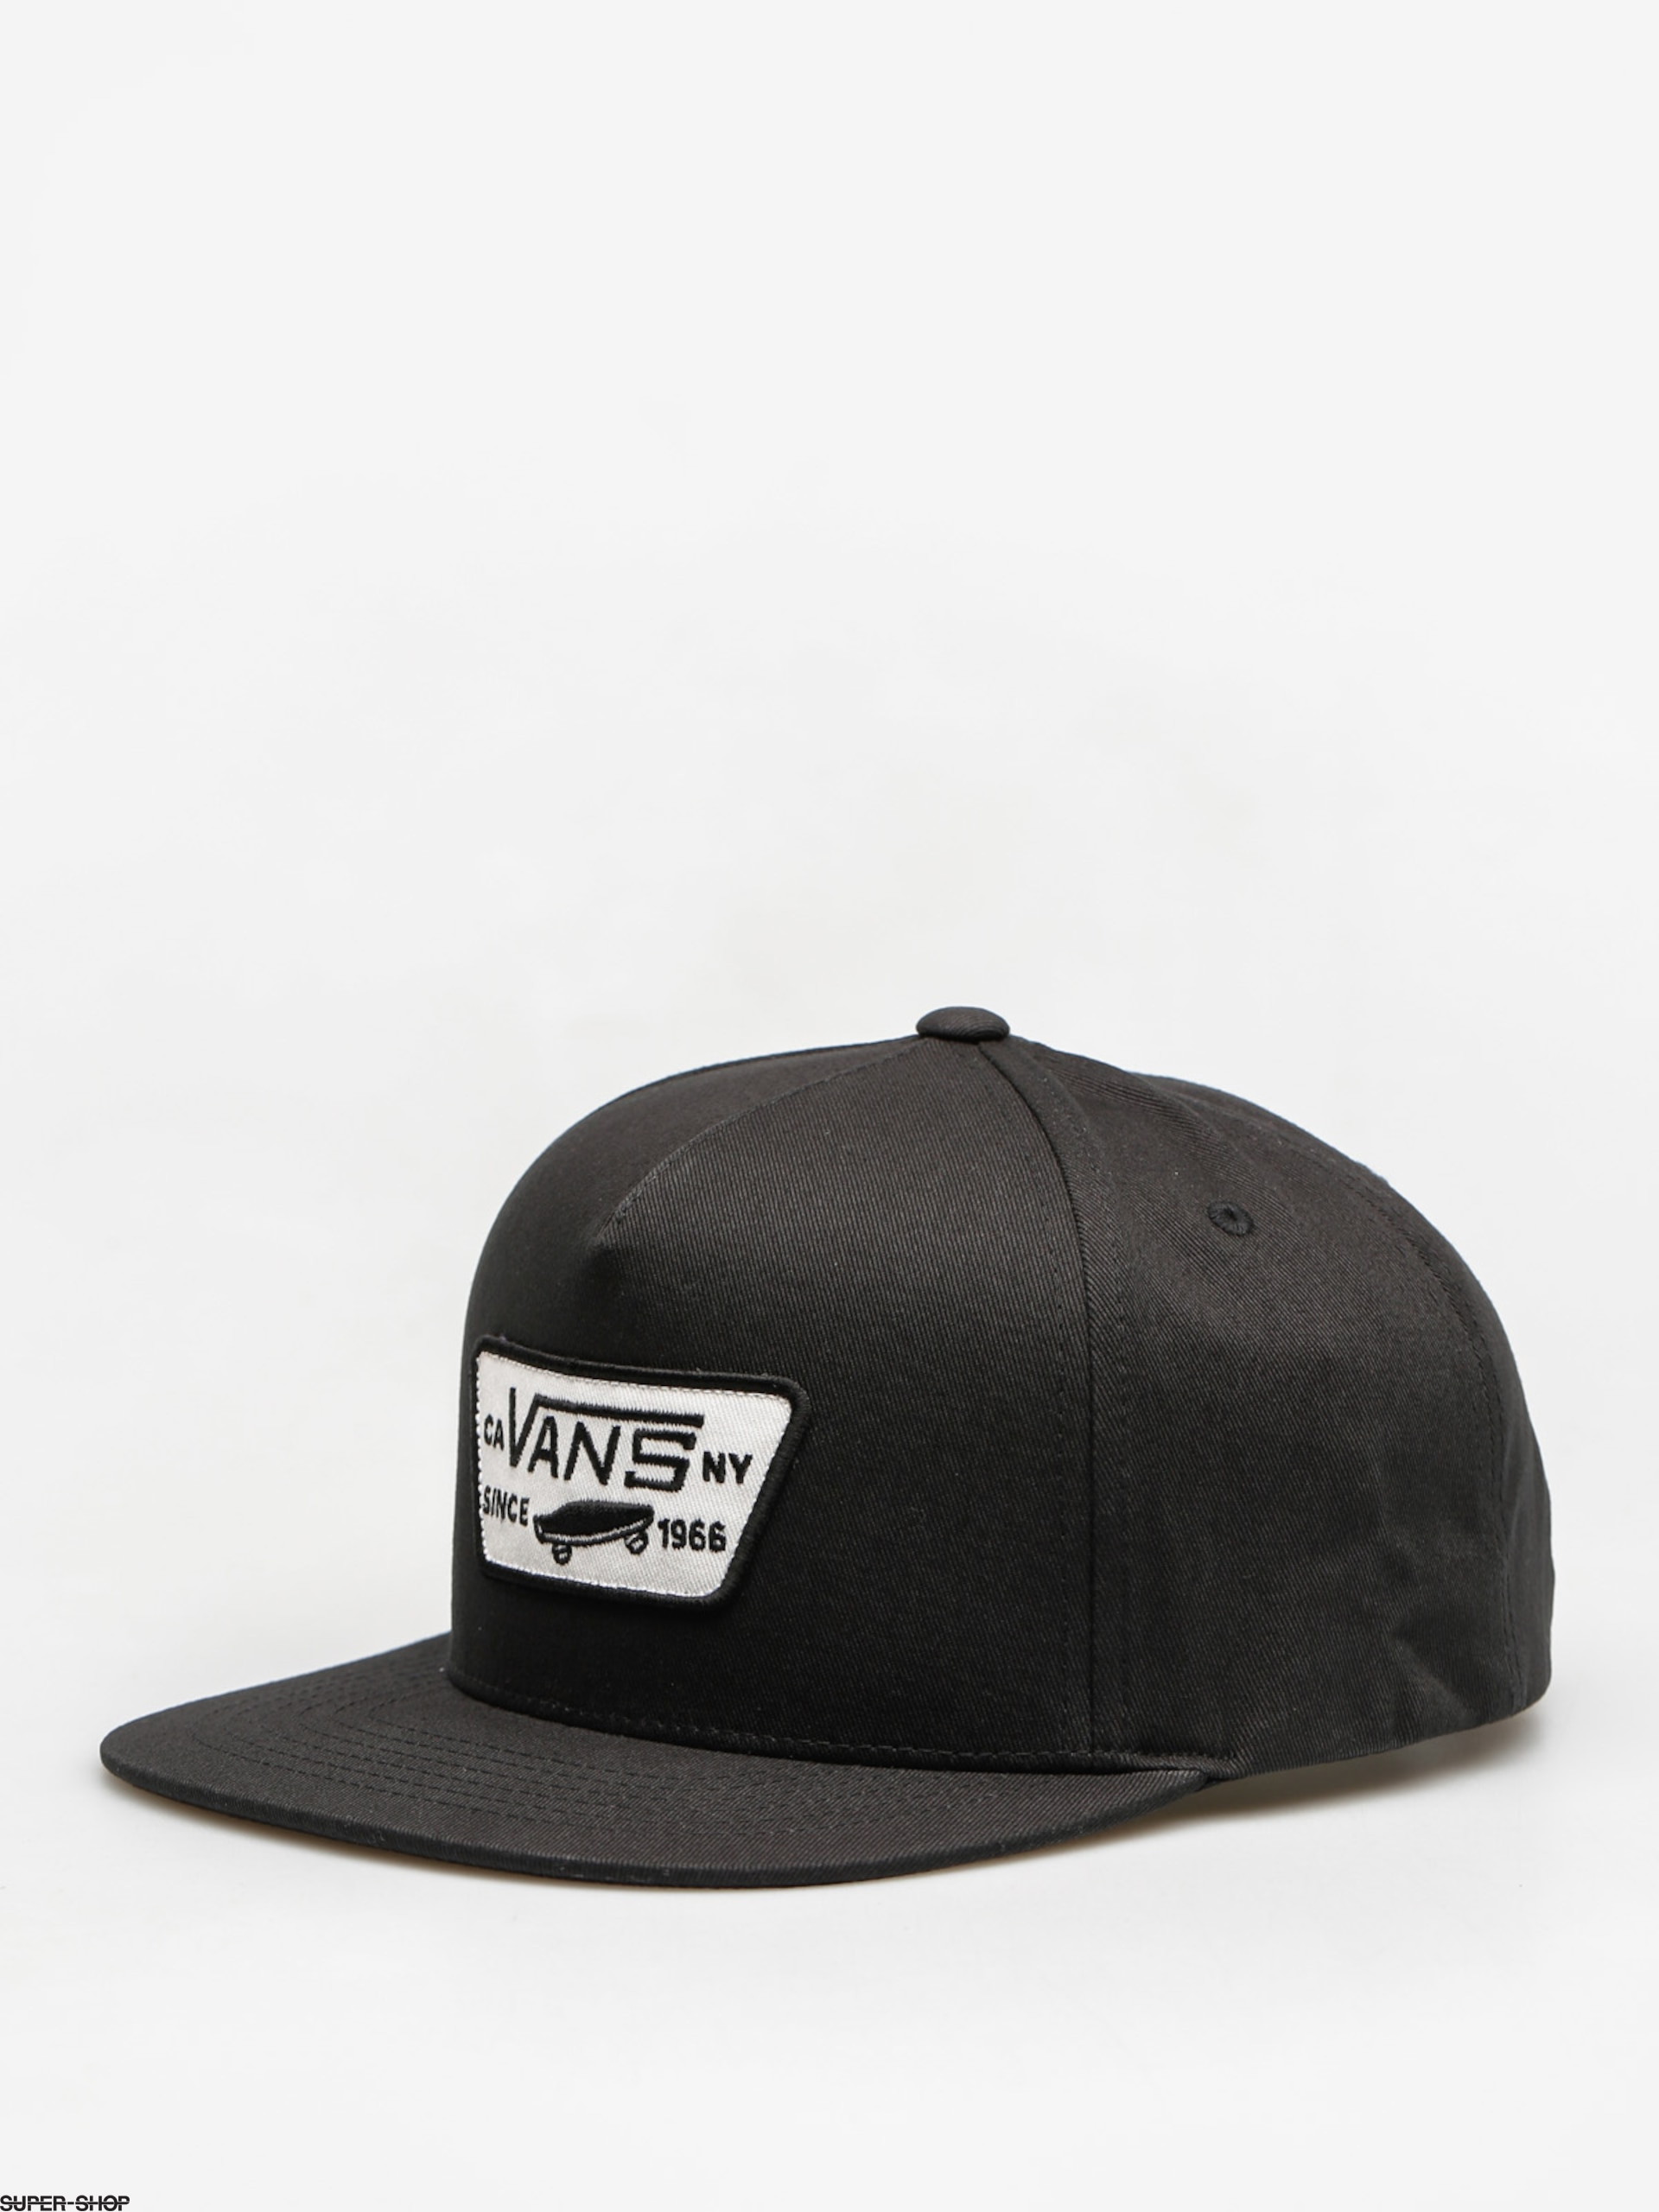 872419-w1920-vans-cap-full-patch-snapback-zd-true-blackl.jpg 383146c73b0